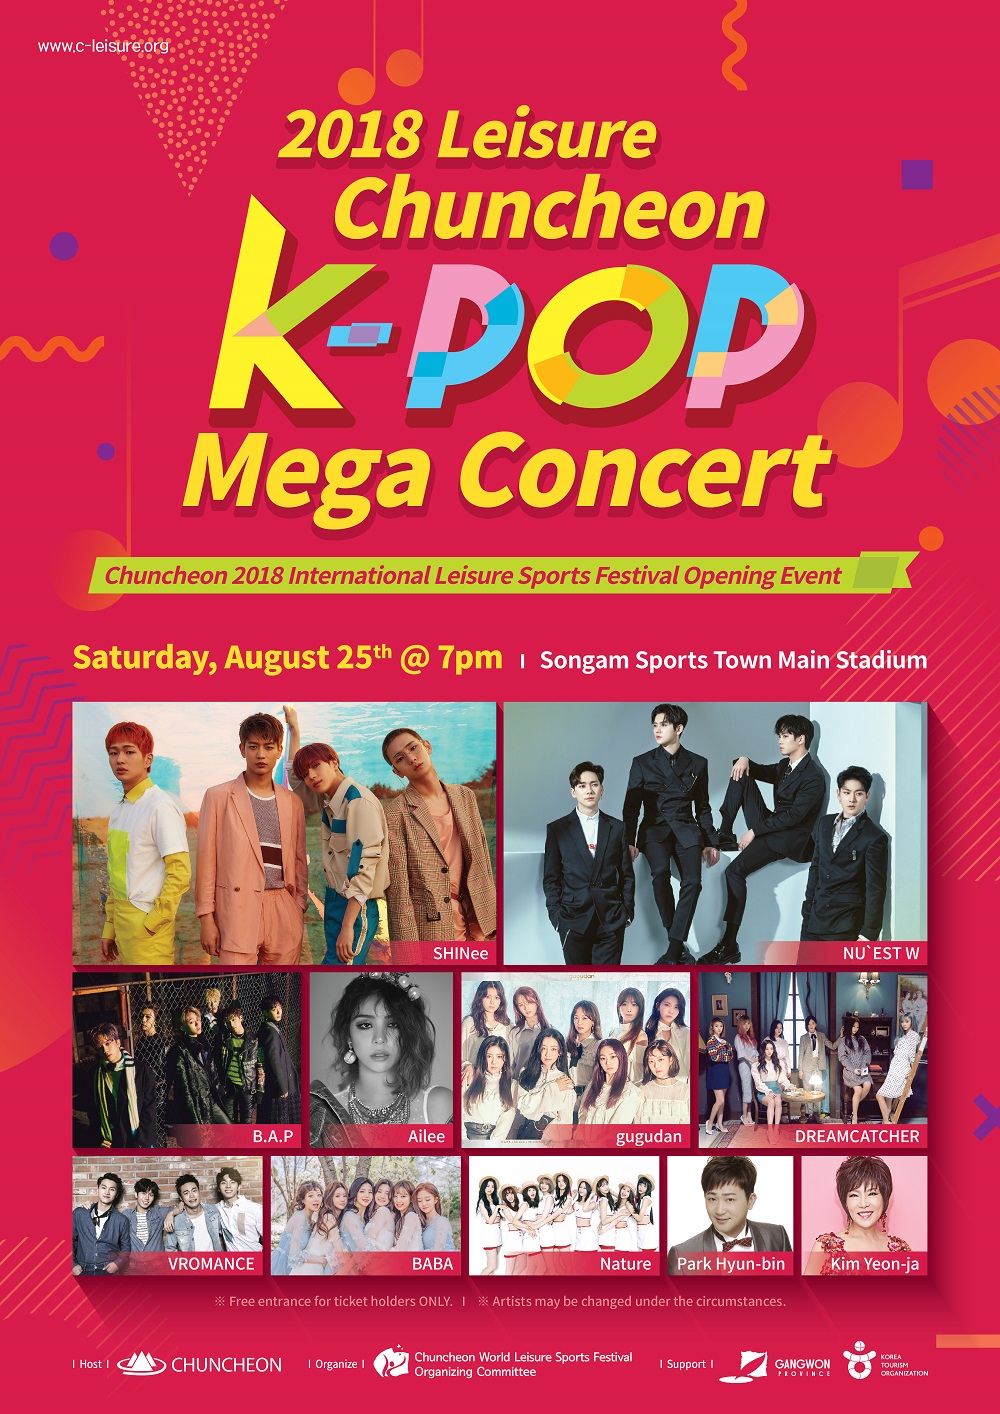 UP TO 65%, 2018 Leisure Chuncheon KPOP mega concert shuttle bus package (Aug 25) | KoreaTravelEasy